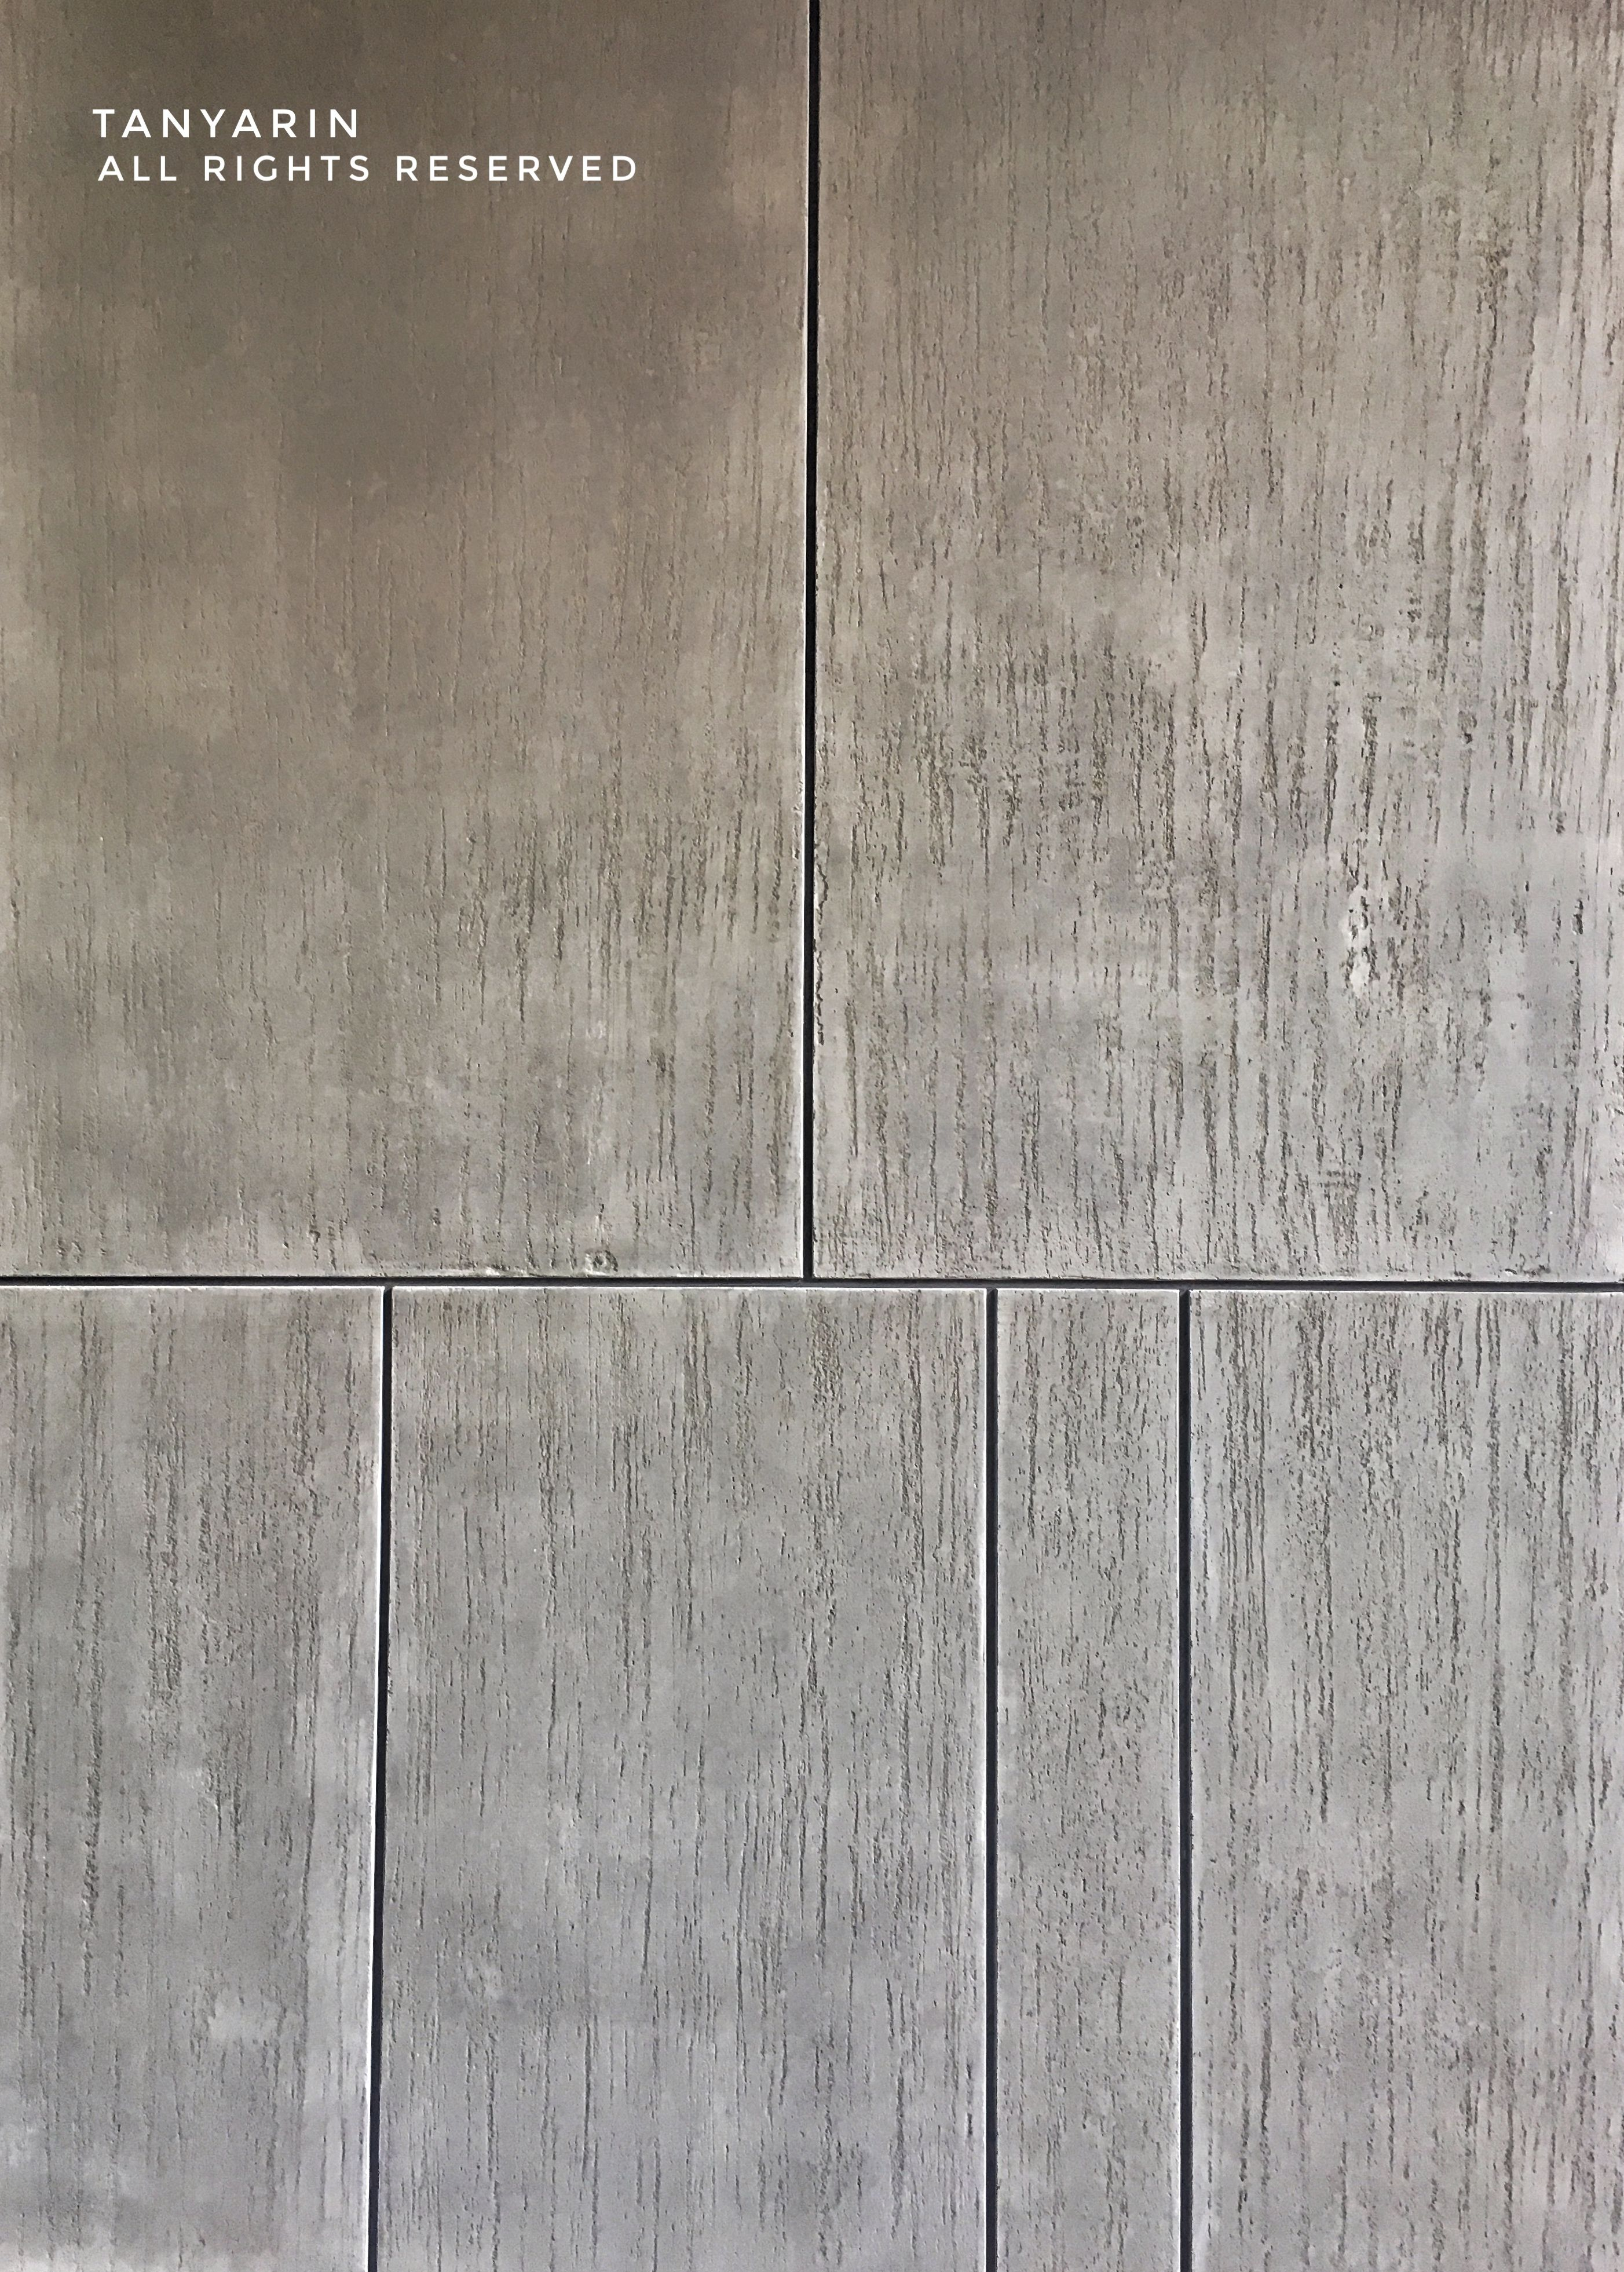 Tanyarin Created Armourcoat Travertine Surface As Concrete Style Travertine Tanyarin Decoration Surface Finishing Wall Cement Design Travertine Concrete